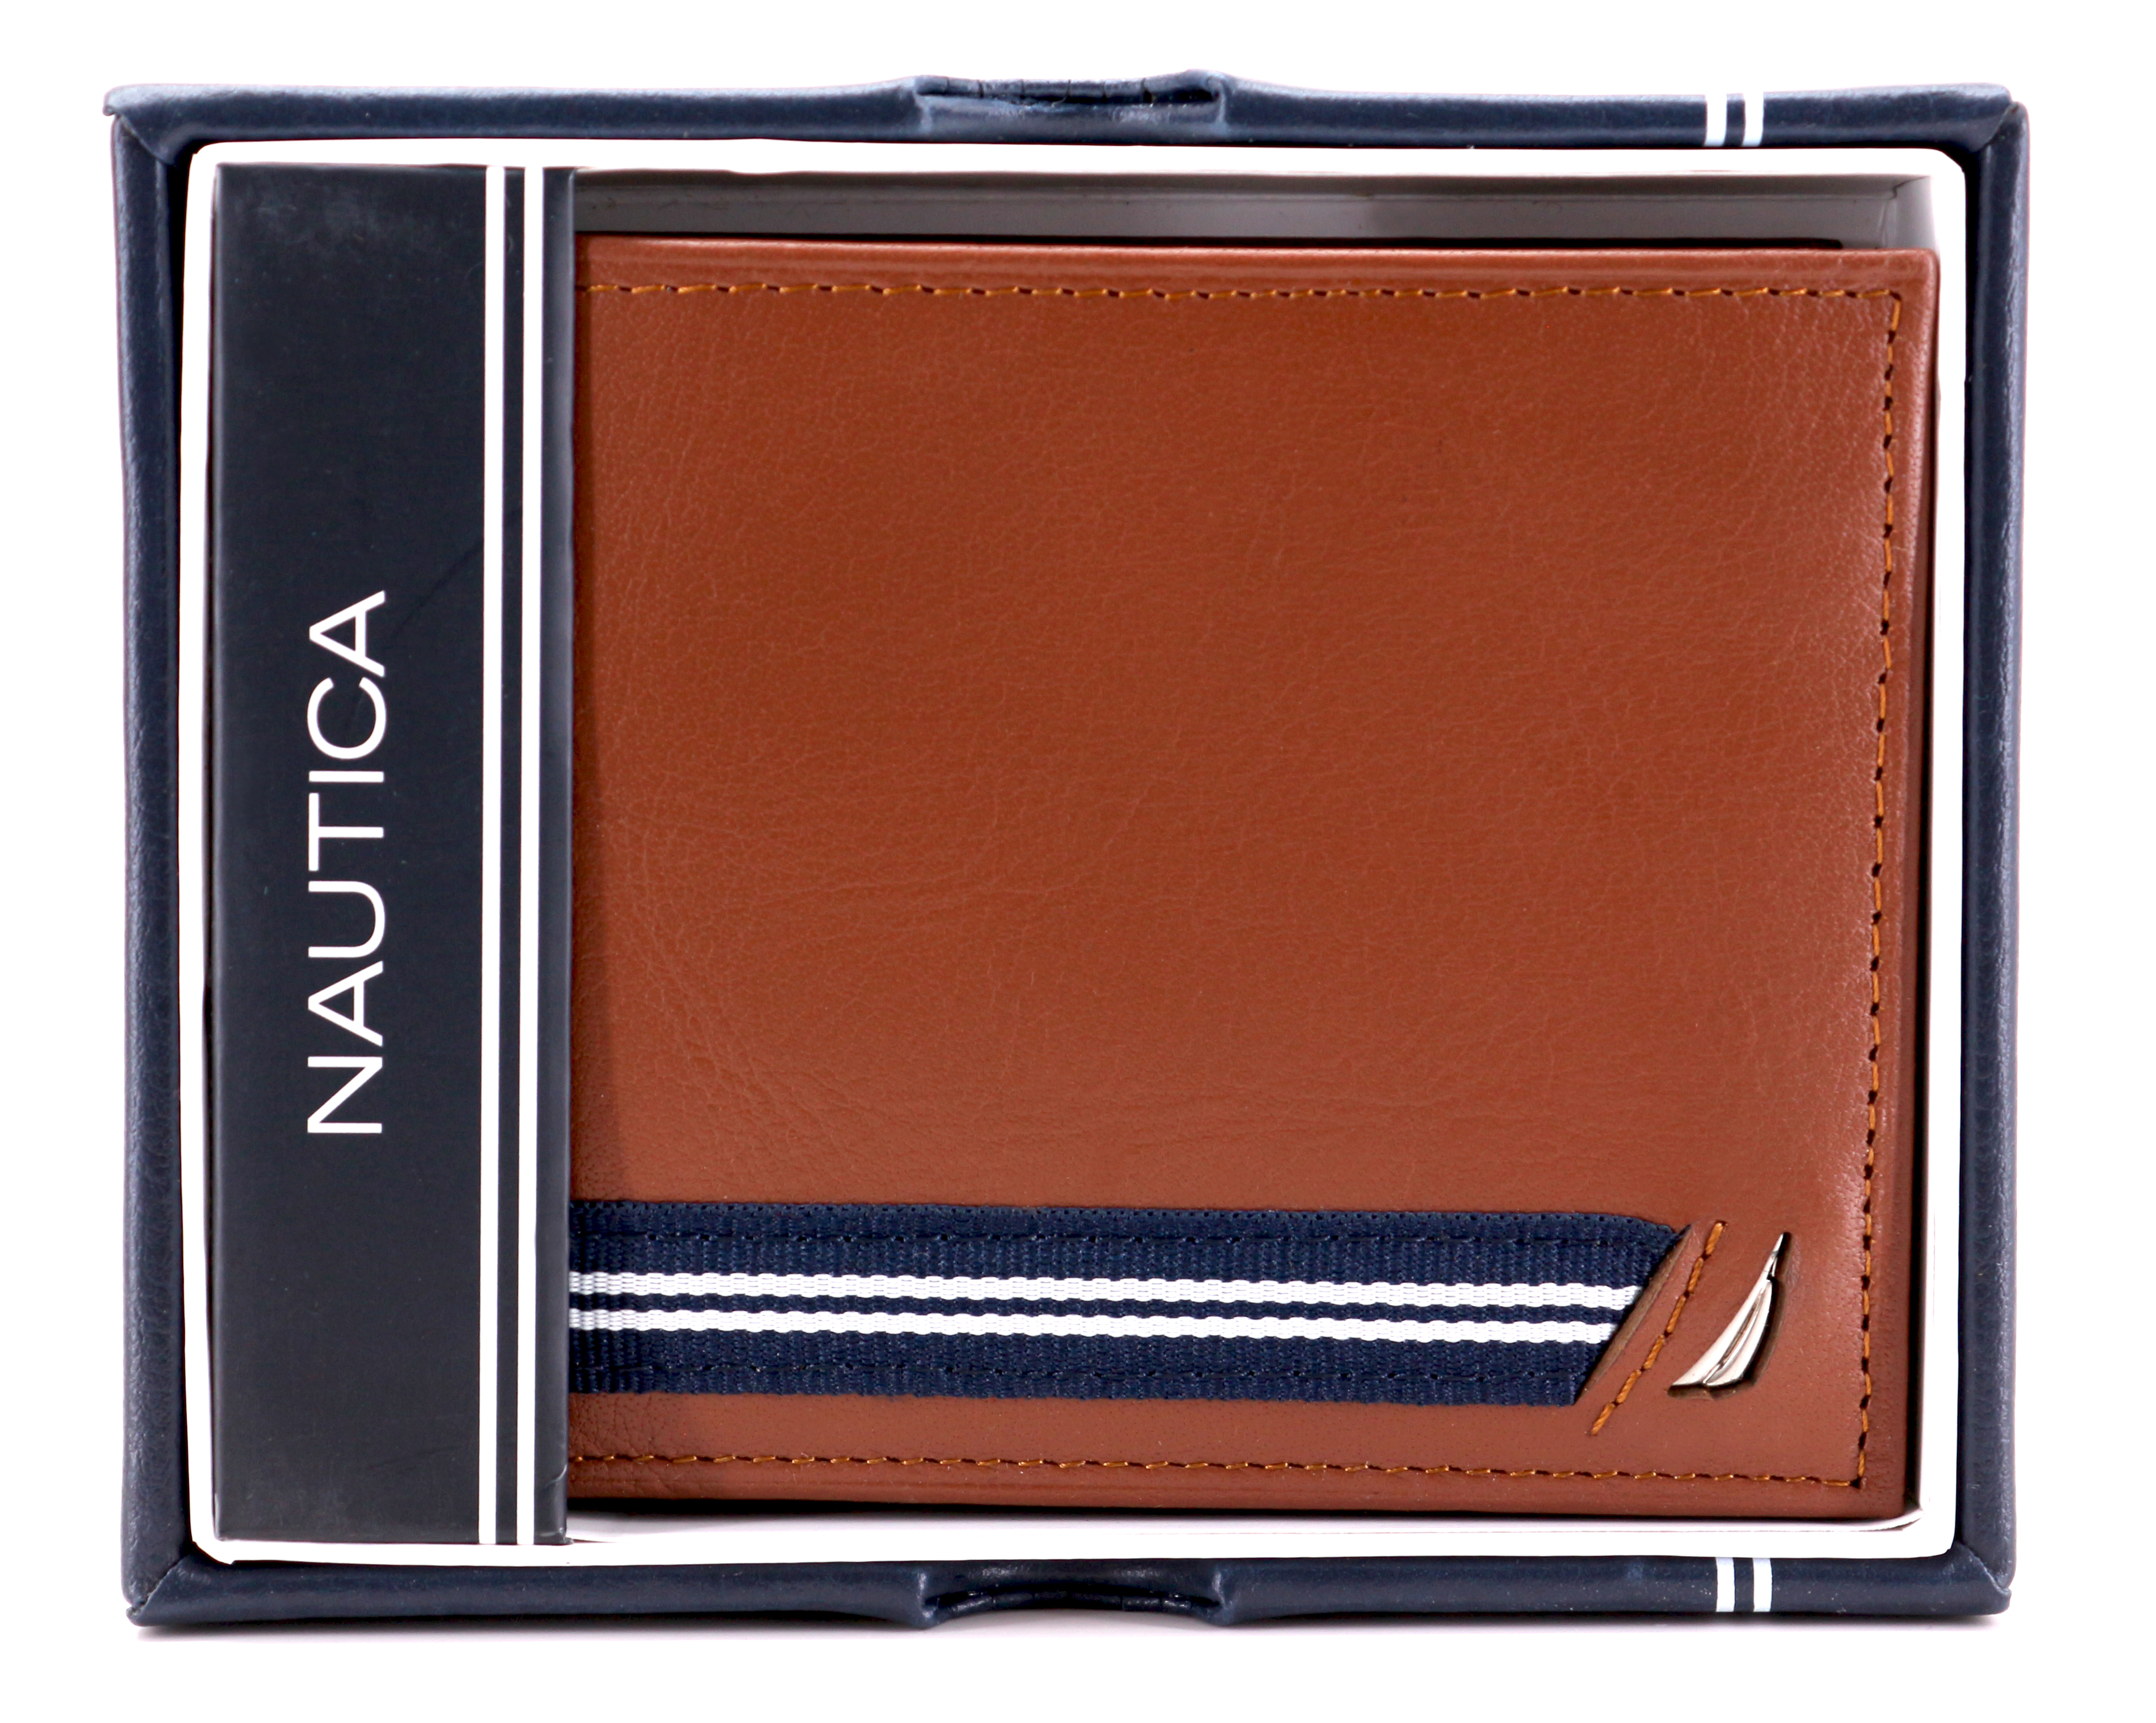 Nautica-Men-039-s-Genuine-Leather-Credit-Card-ID-Double-Billfold-Passcase-Wallet thumbnail 31